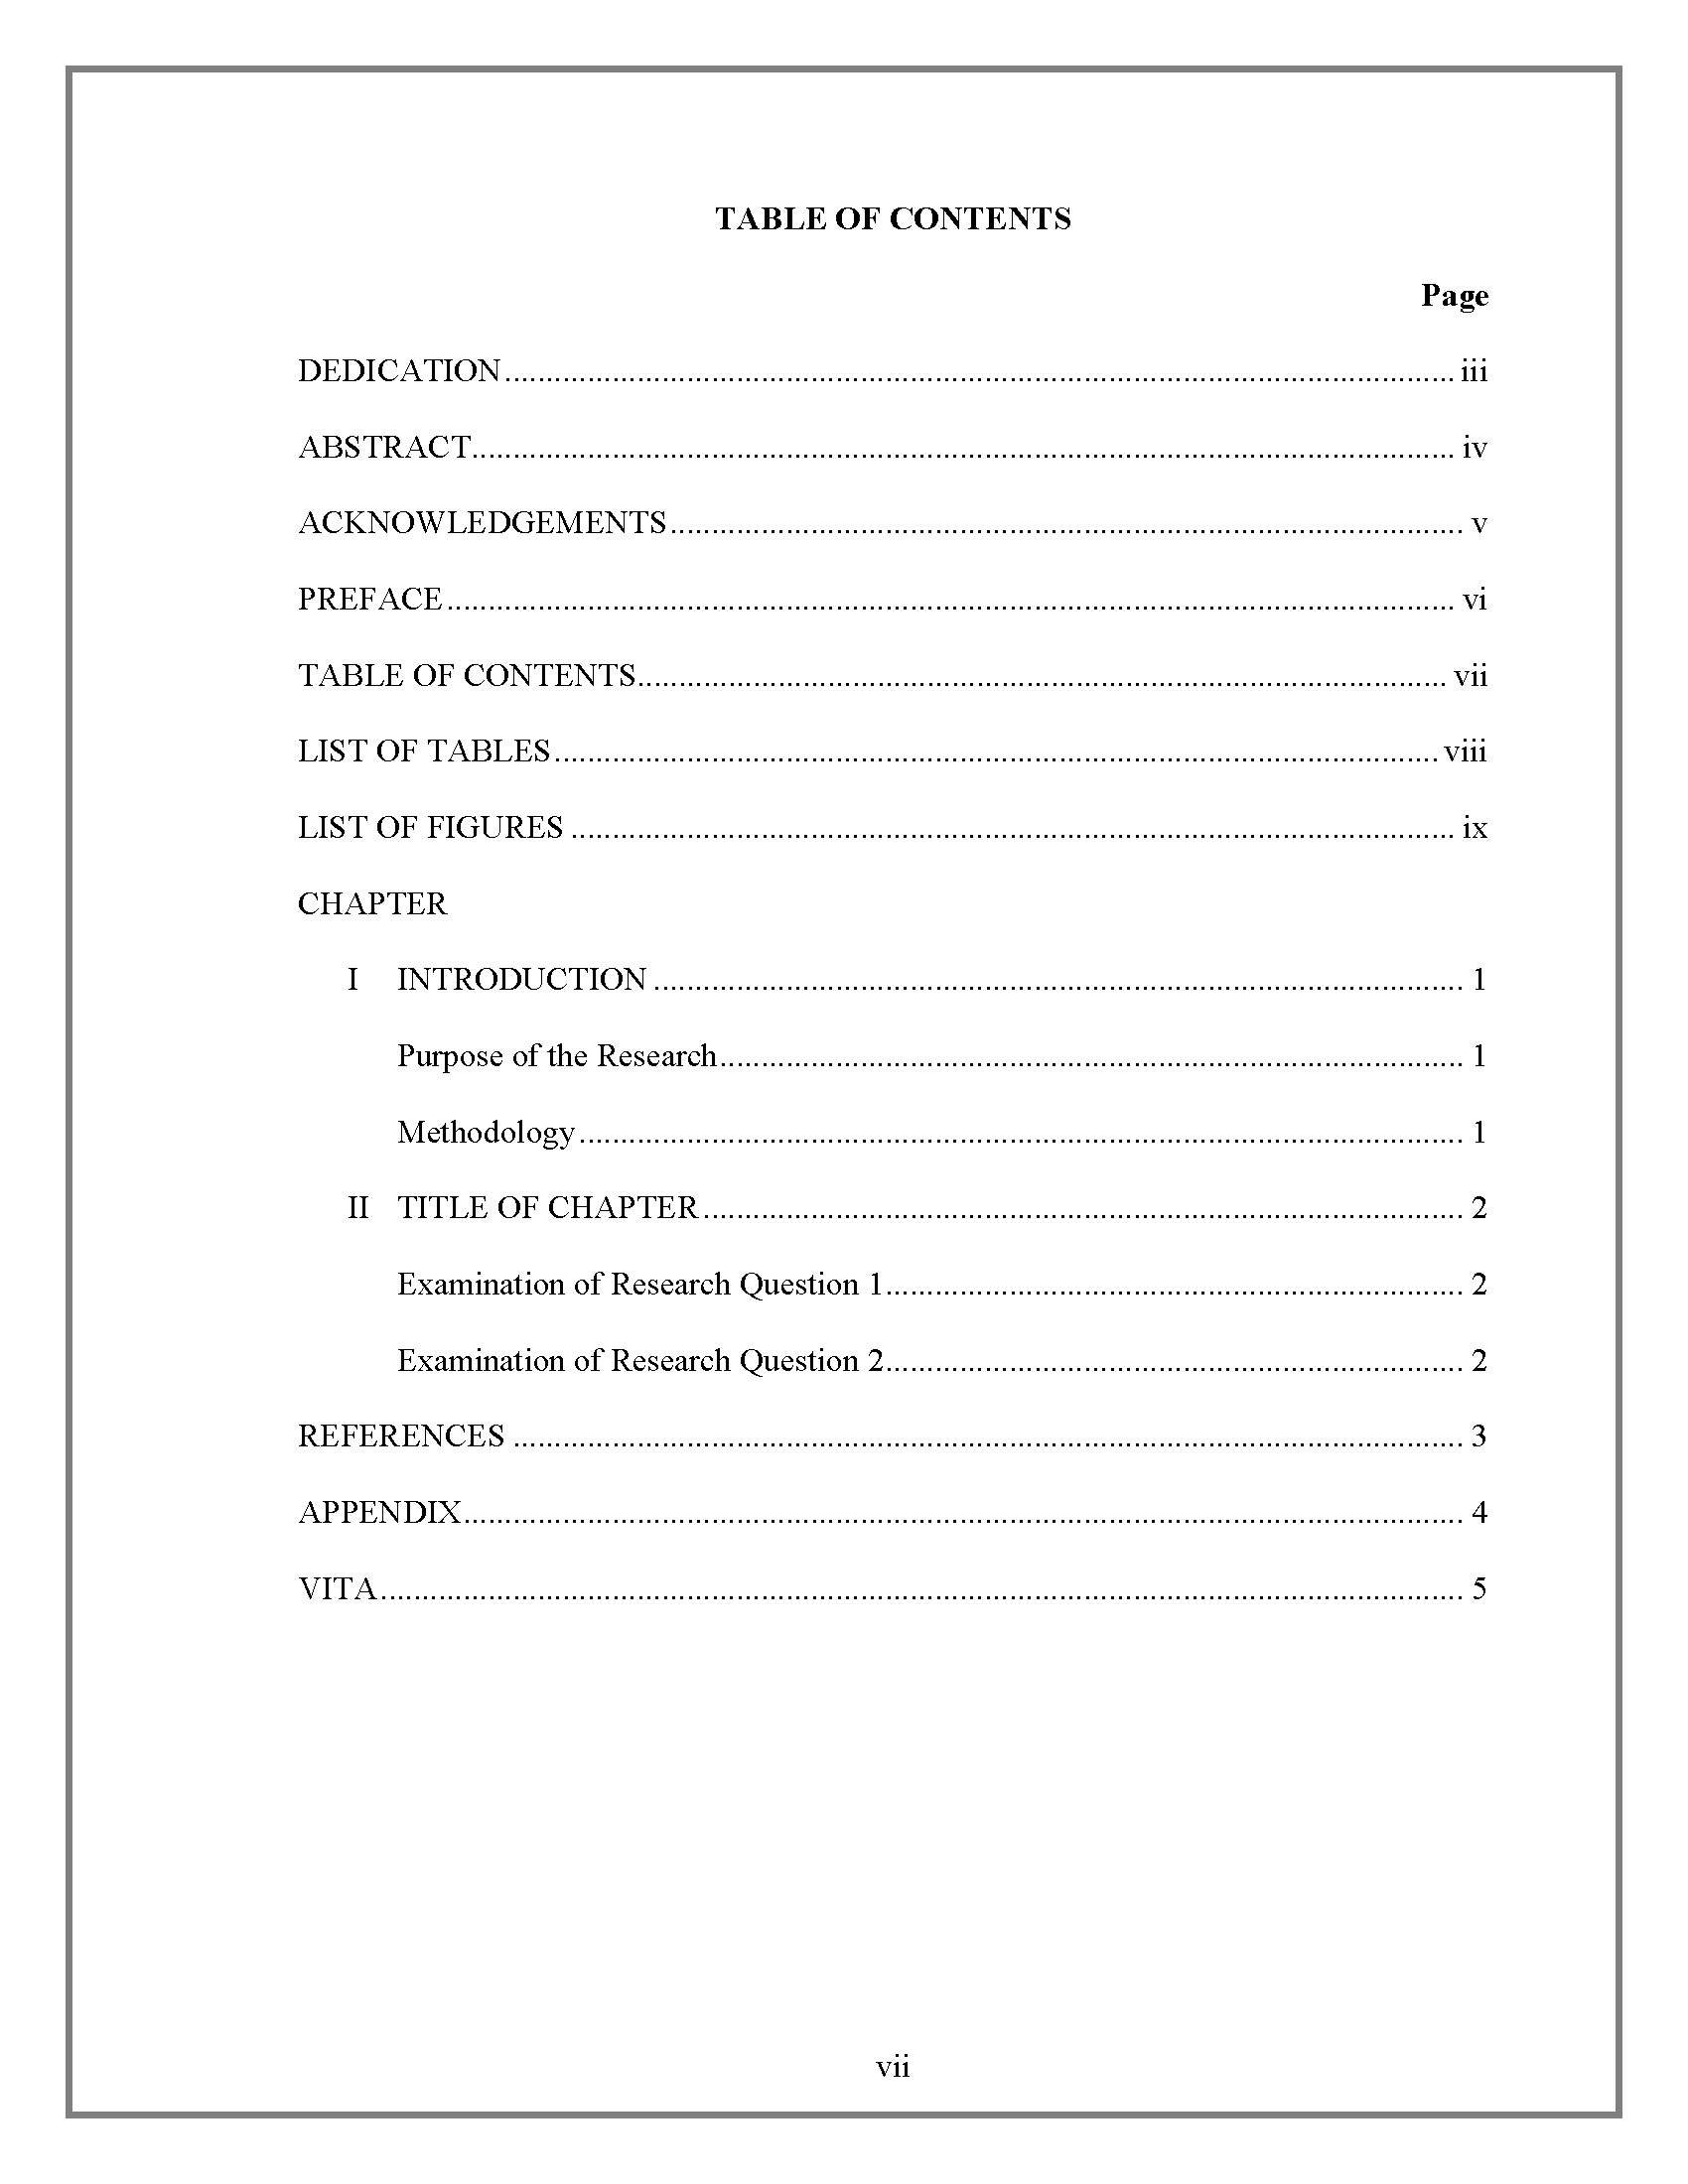 004 Apa Format Research Paper Table Of Contents Contentsborder Amazing Sample Example Full